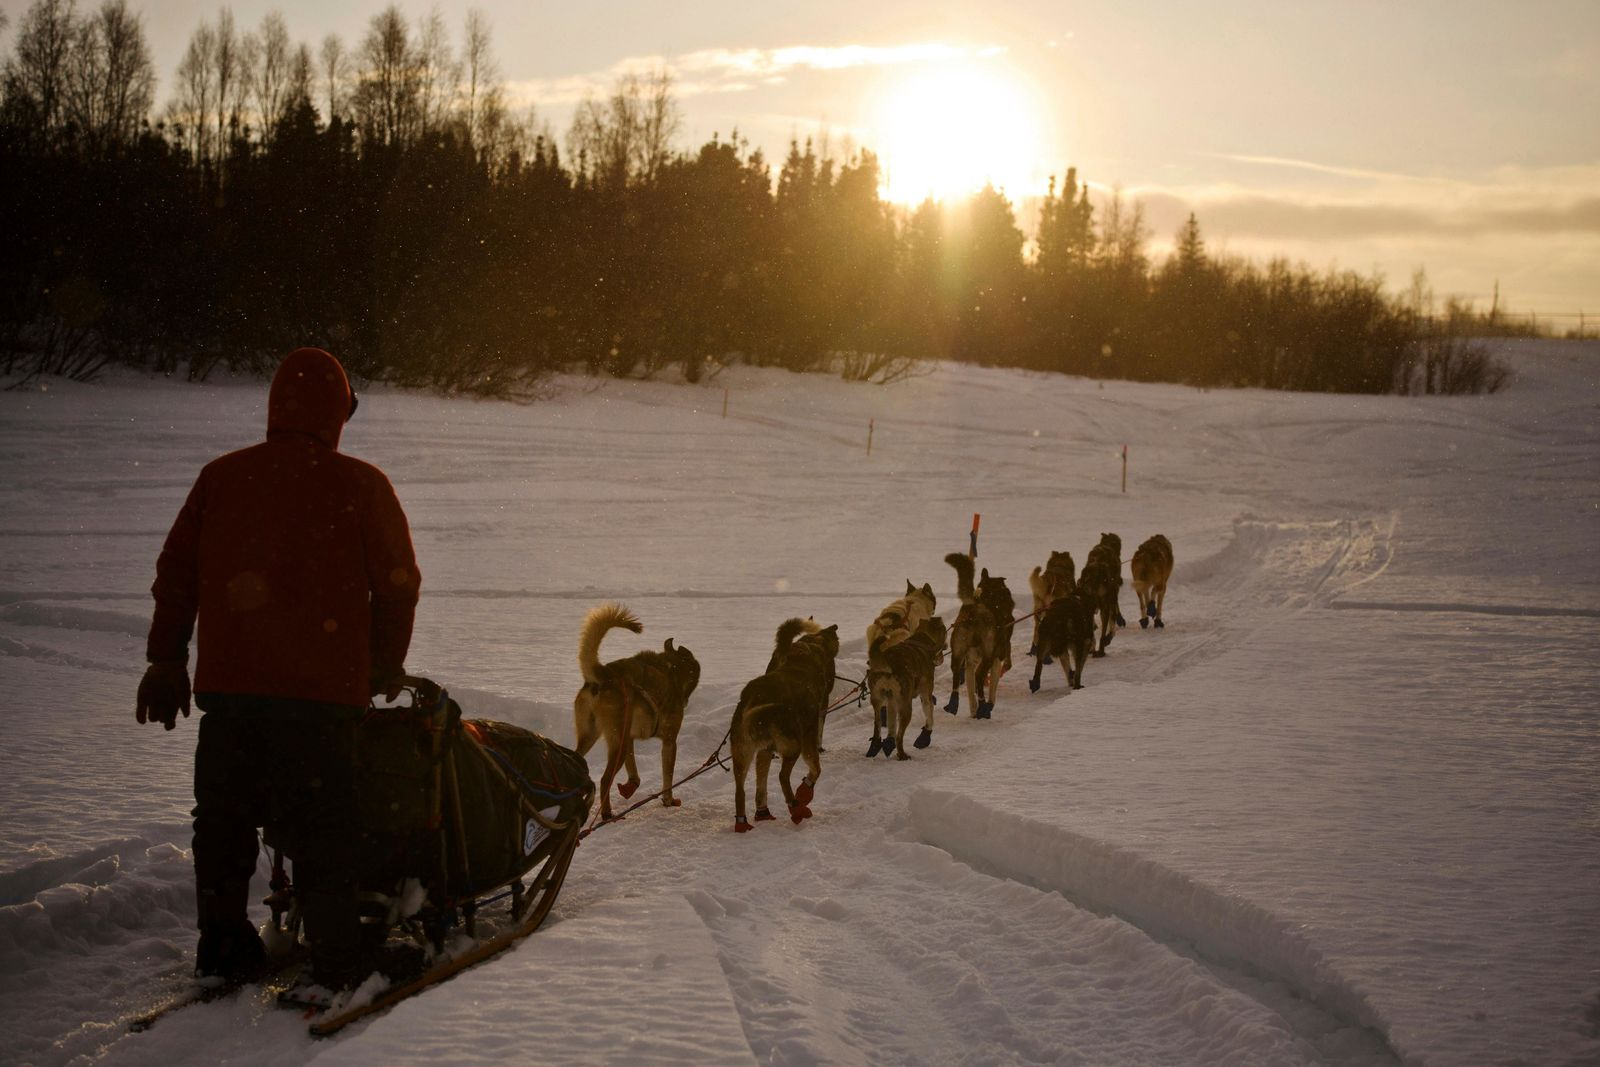 FILE - In this March 8, 2018 file photo Musher Ramey Smyth approaches Shageluk, Alaska, as rain falls and some sun hits the area during the Iditarod Trail Sled Dog Race. (Marc Lester/Anchorage Daily News via AP, File)